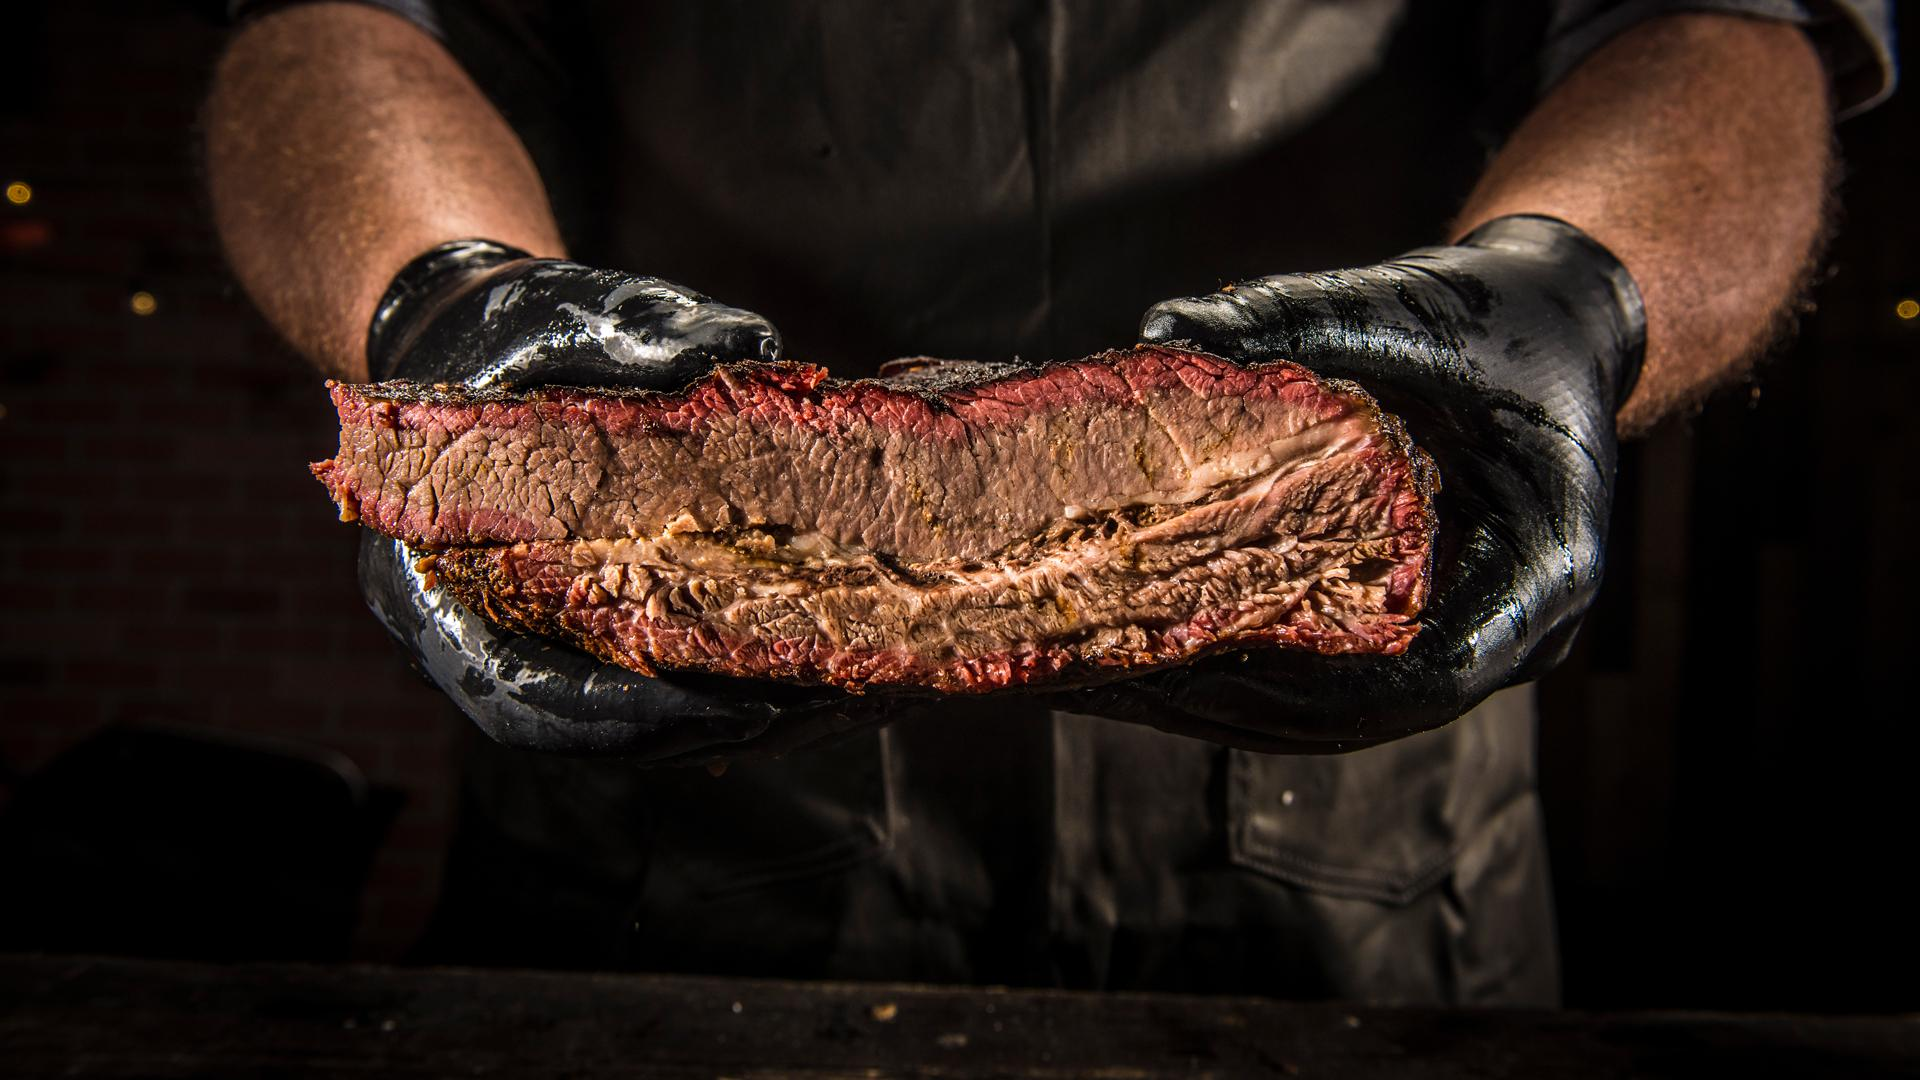 Brisket cooked on a Traeger grill